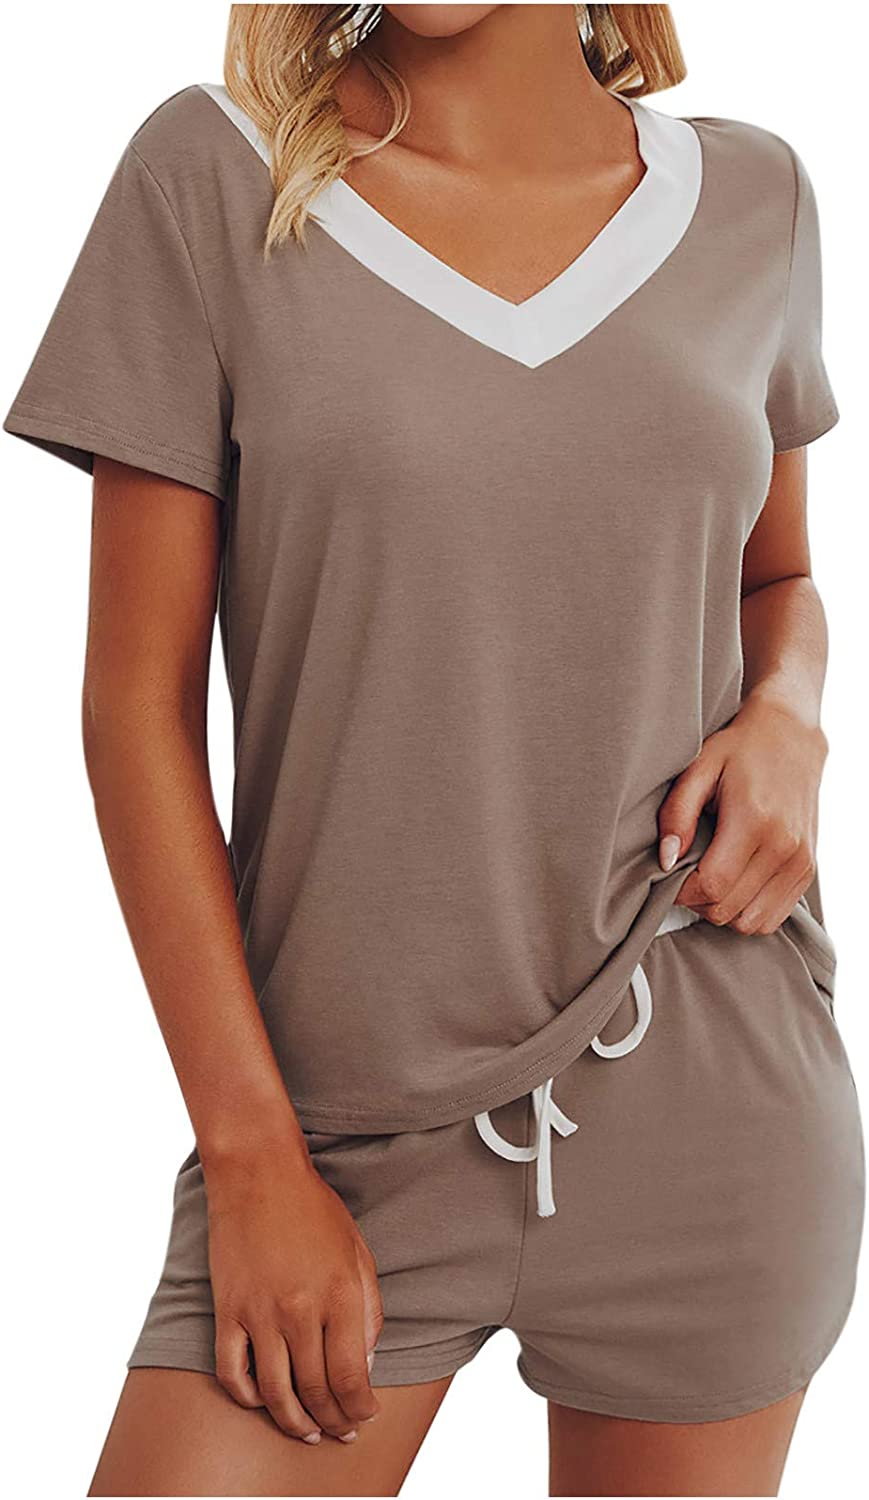 MULINN Solid Color Tracksuit for Women V Neck Shirts Drawstring Shorts Sets Summer Leisure Lounge Wear Sleepwear Suit Sexy